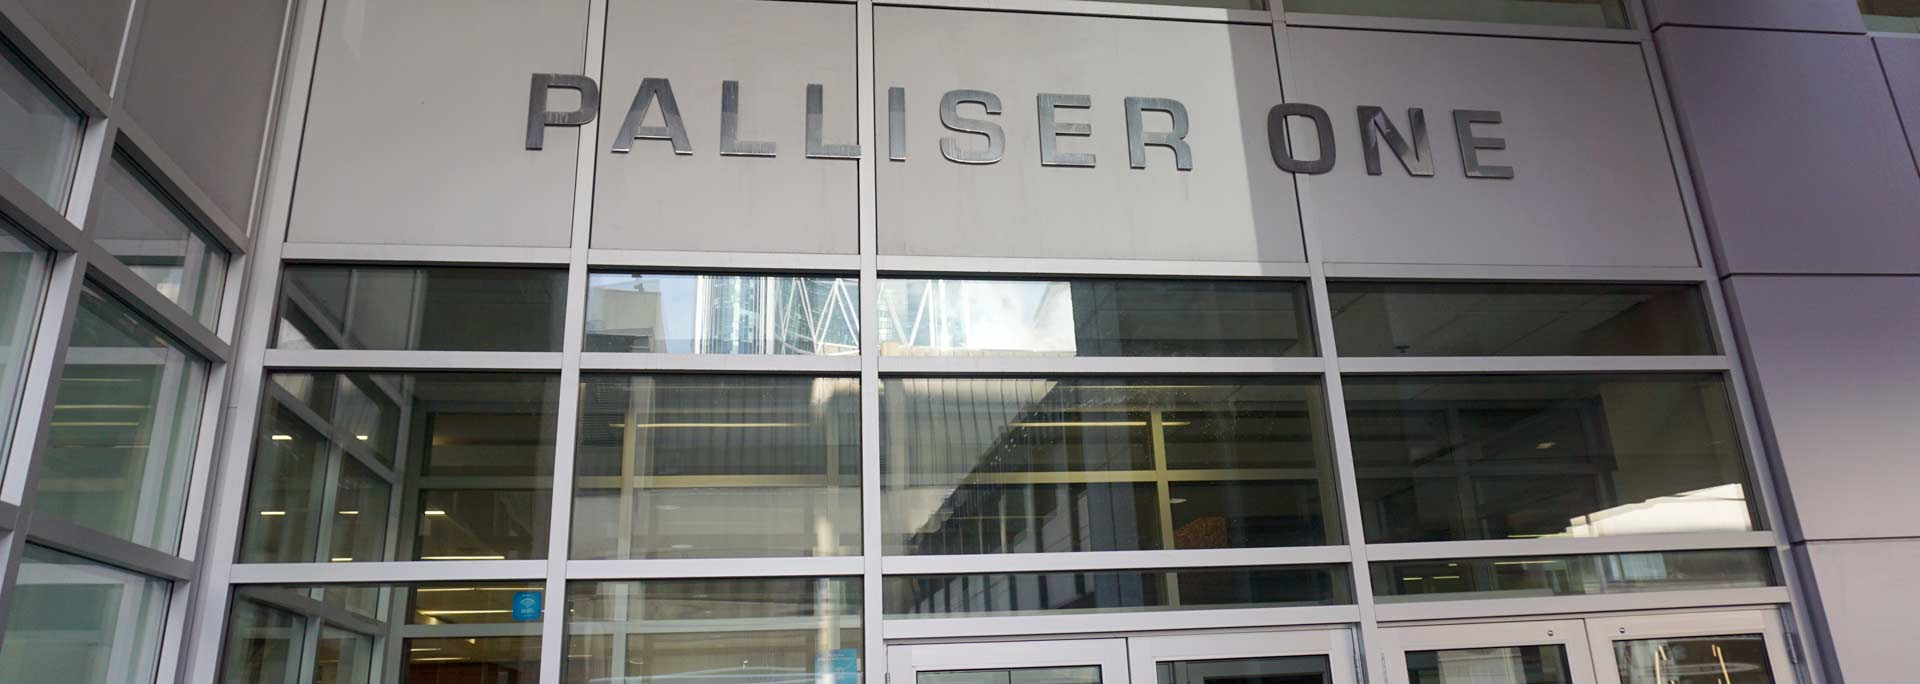 palliser-square-one-entrance-banner